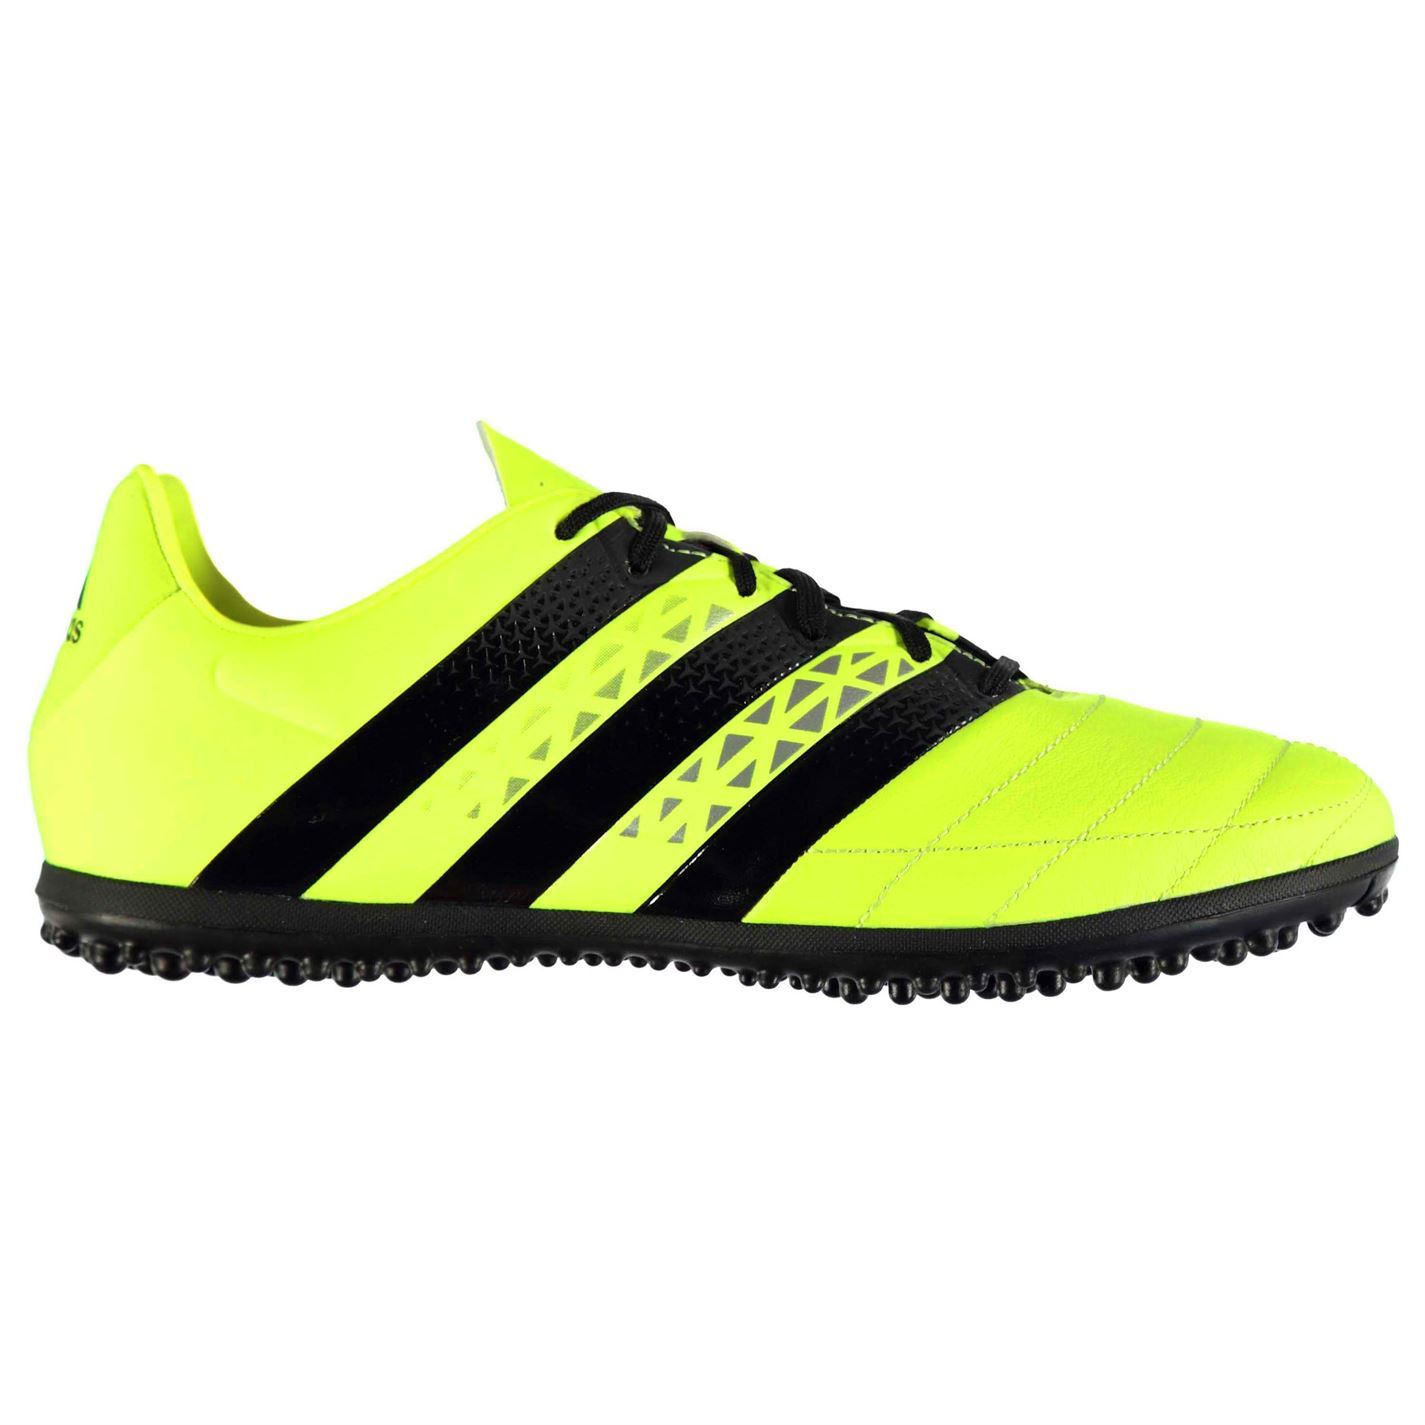 adidas Mens Ace 16.3 TF Leather Football Boots Trainers Lace Up Shoes Sports 149f7239bf15